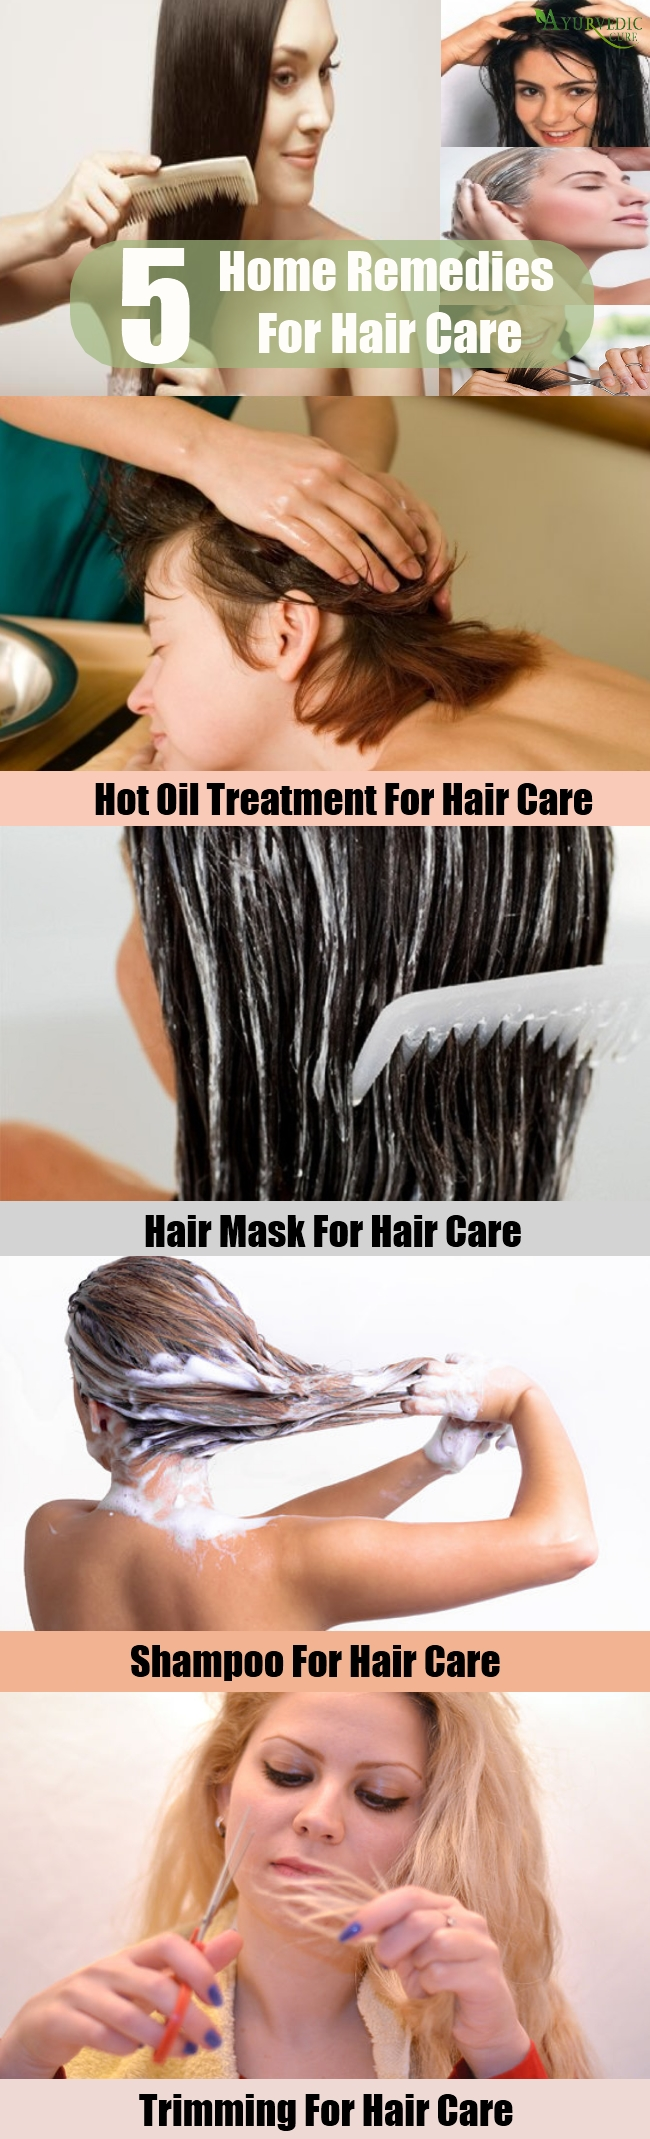 Top Home Remedies For Hair Care